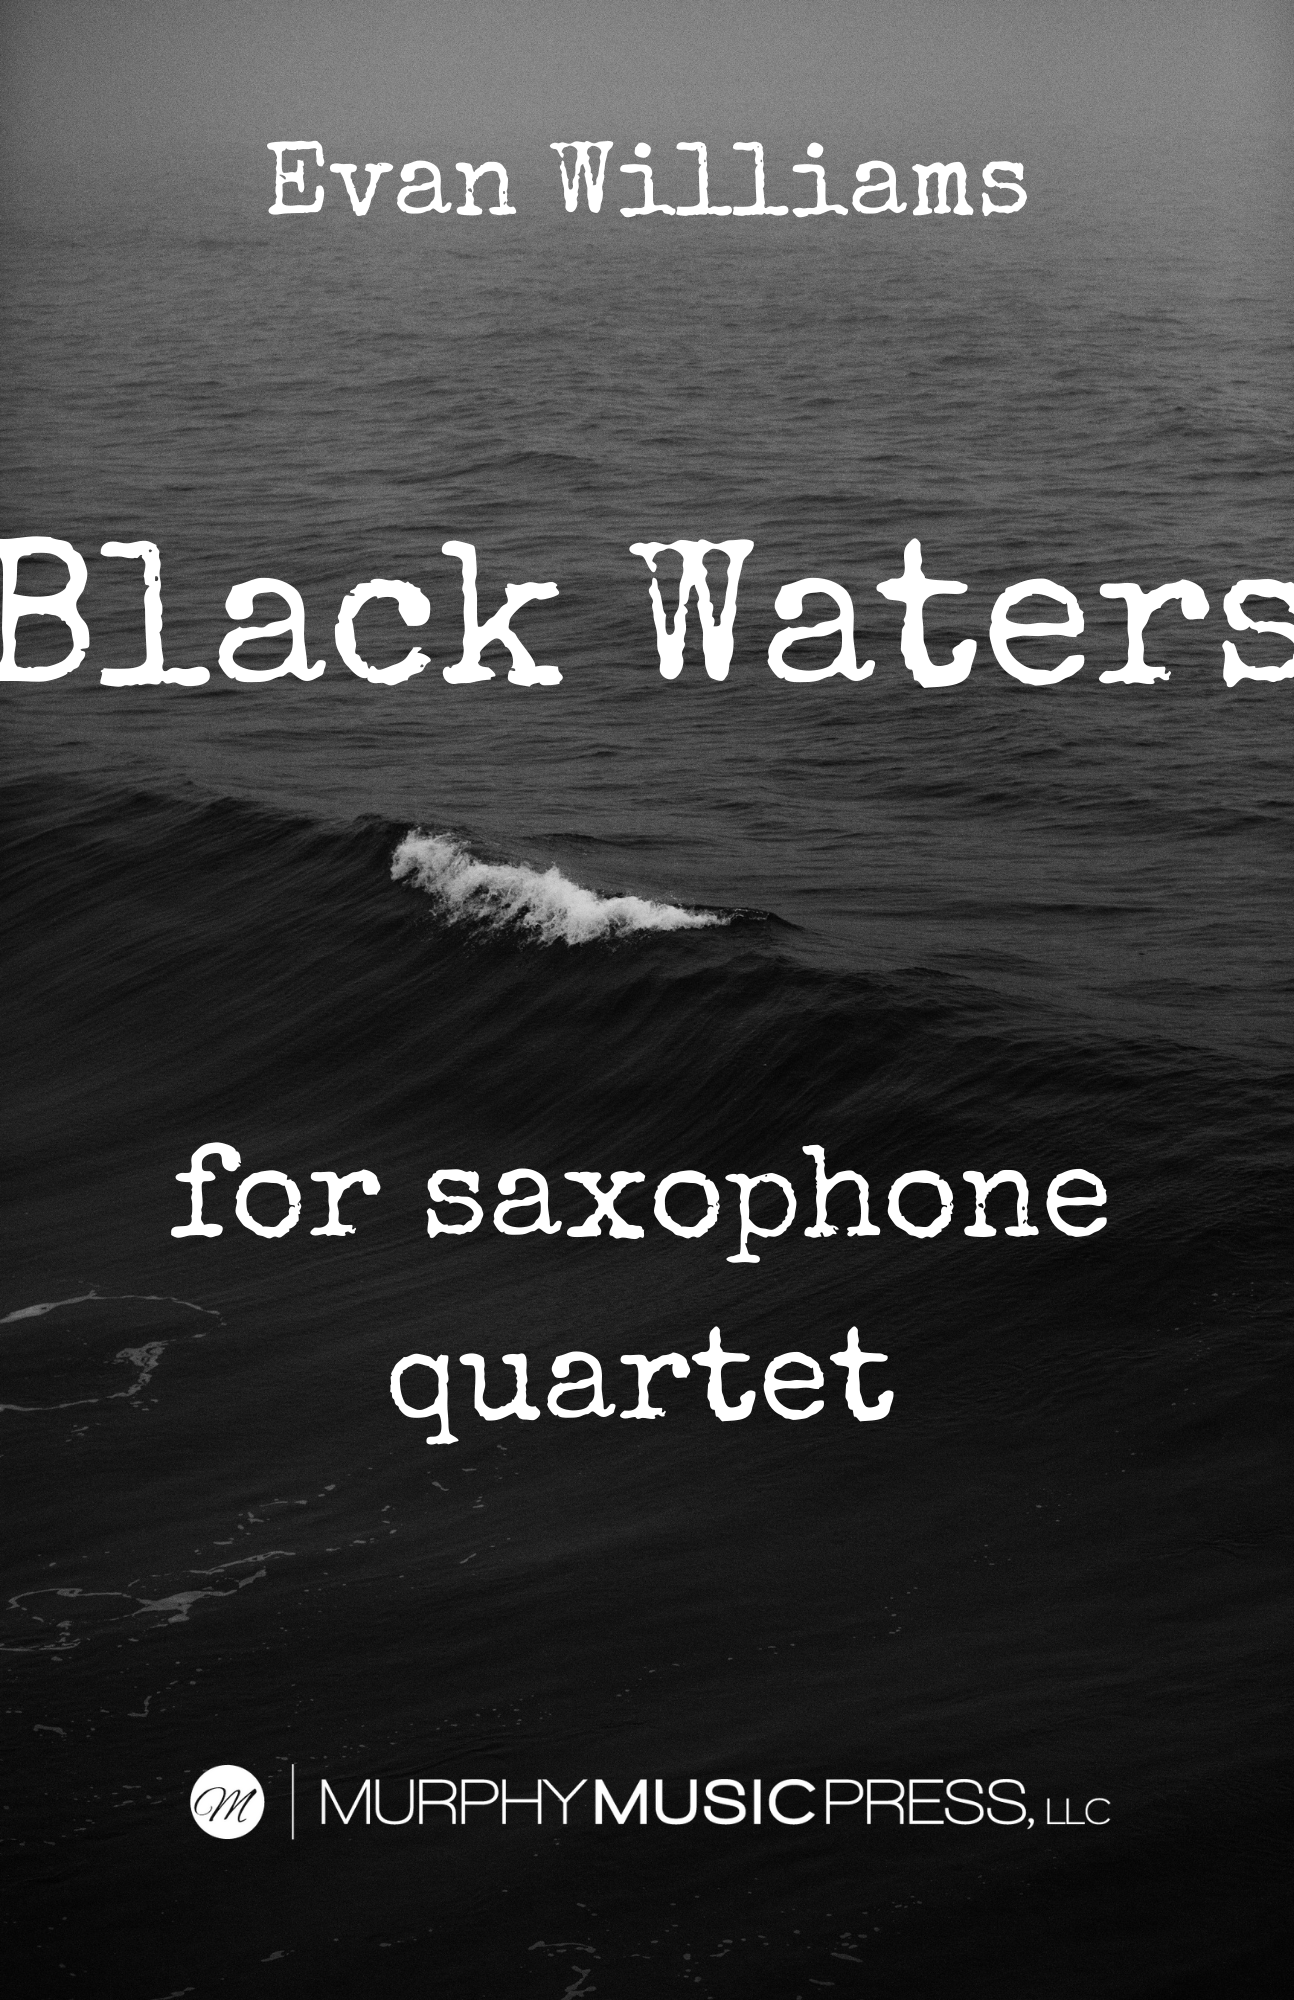 Black Waters by Evan Williams